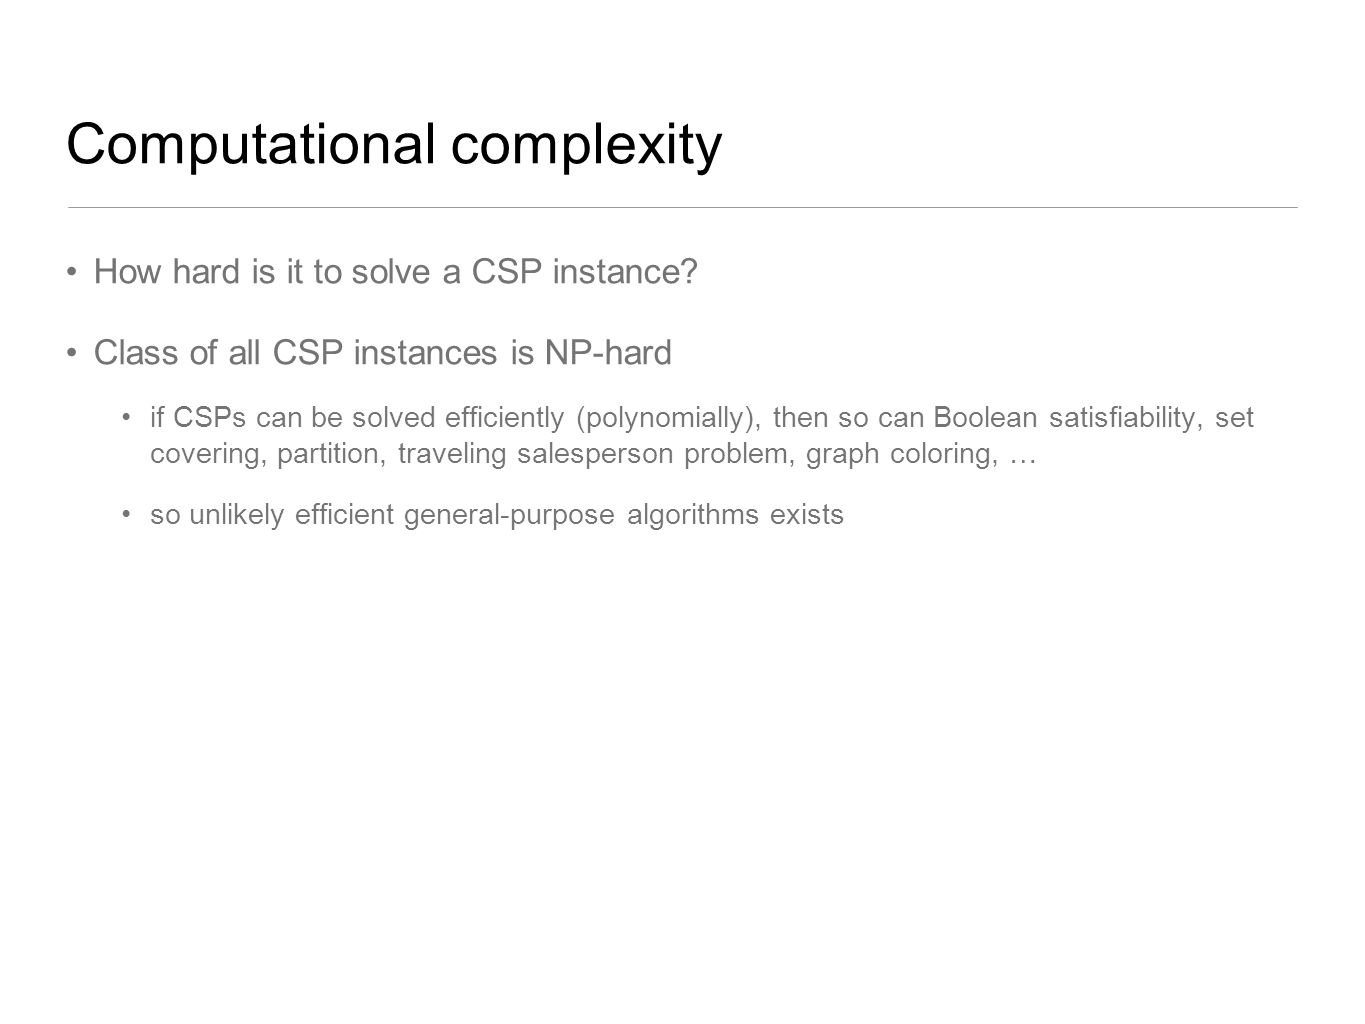 Computational complexity How hard is it to solve a CSP instance? Class of all CSP instances is NP-hard if CSPs can be solved efficiently (polynomially